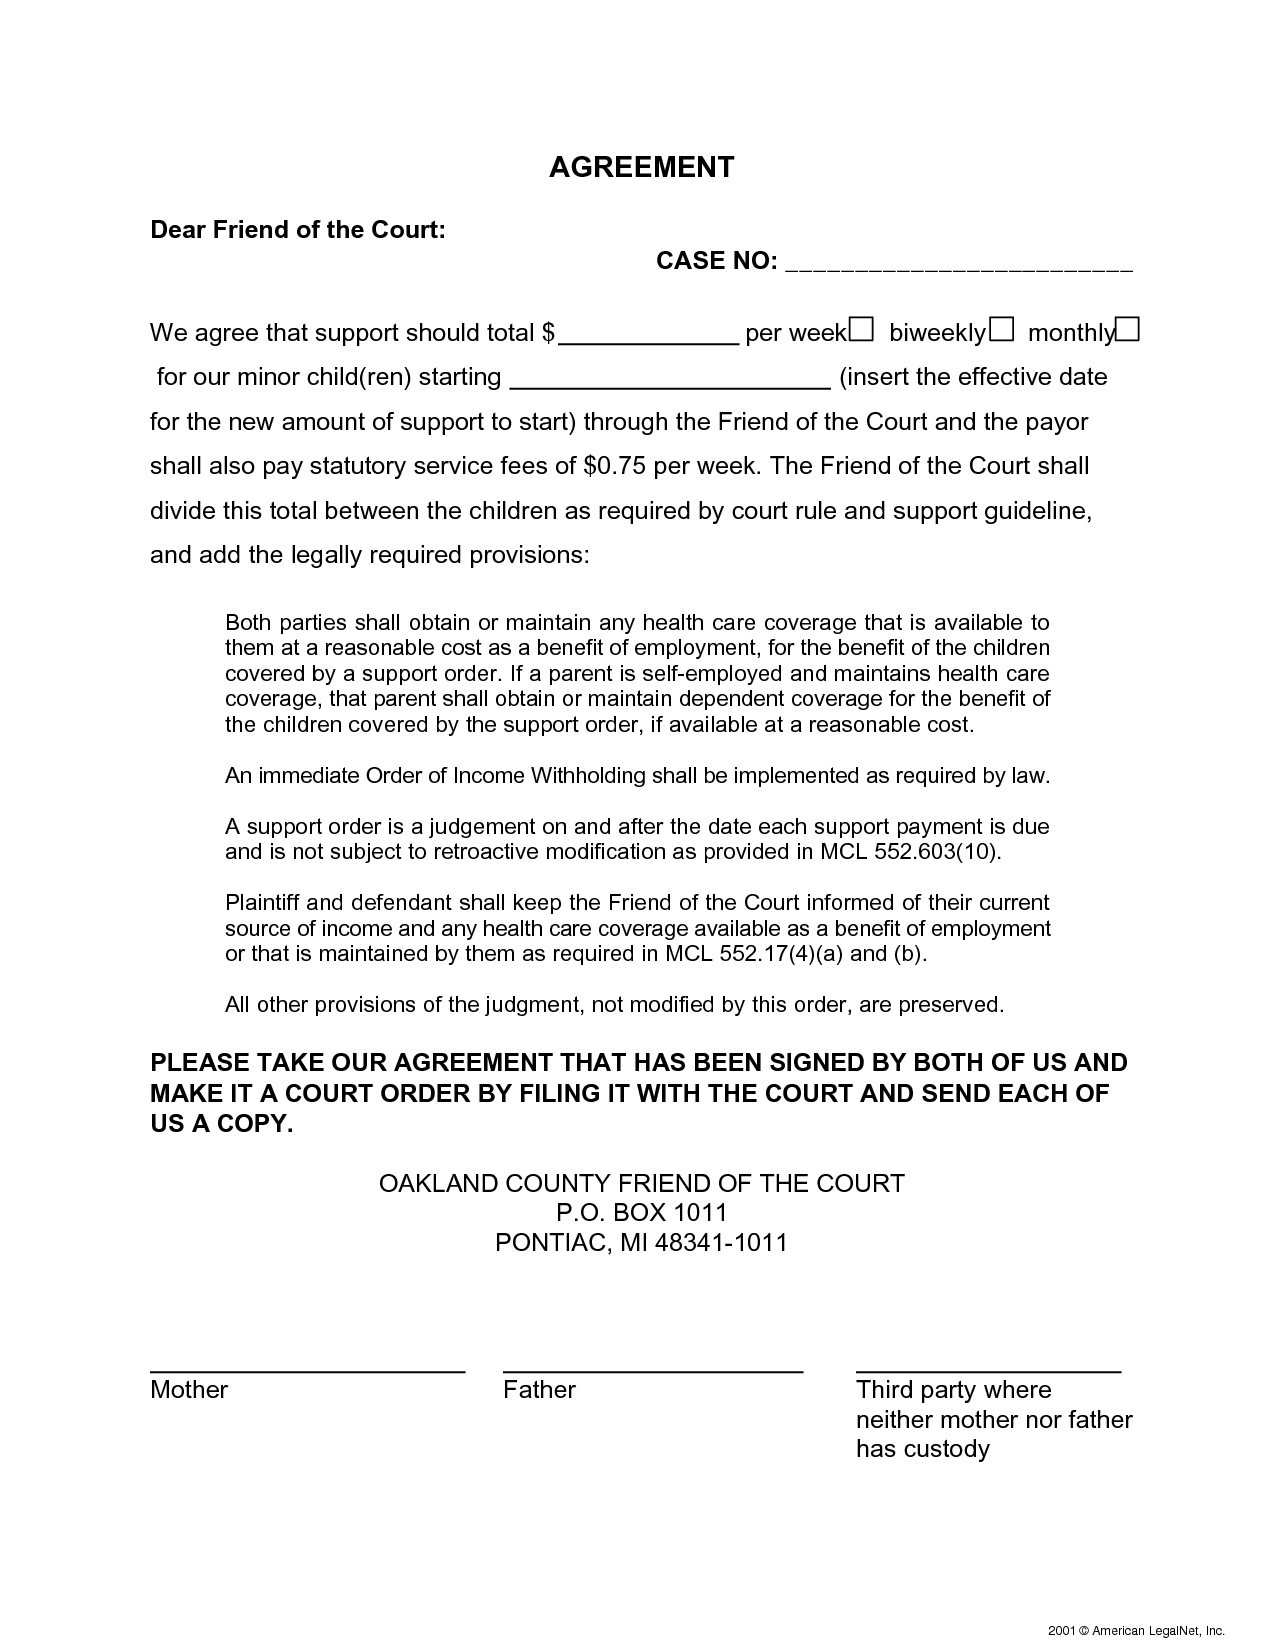 Child Support Letter Of Agreement Template - Notarized Letter Agreement format Inspirationa Notarized Letter